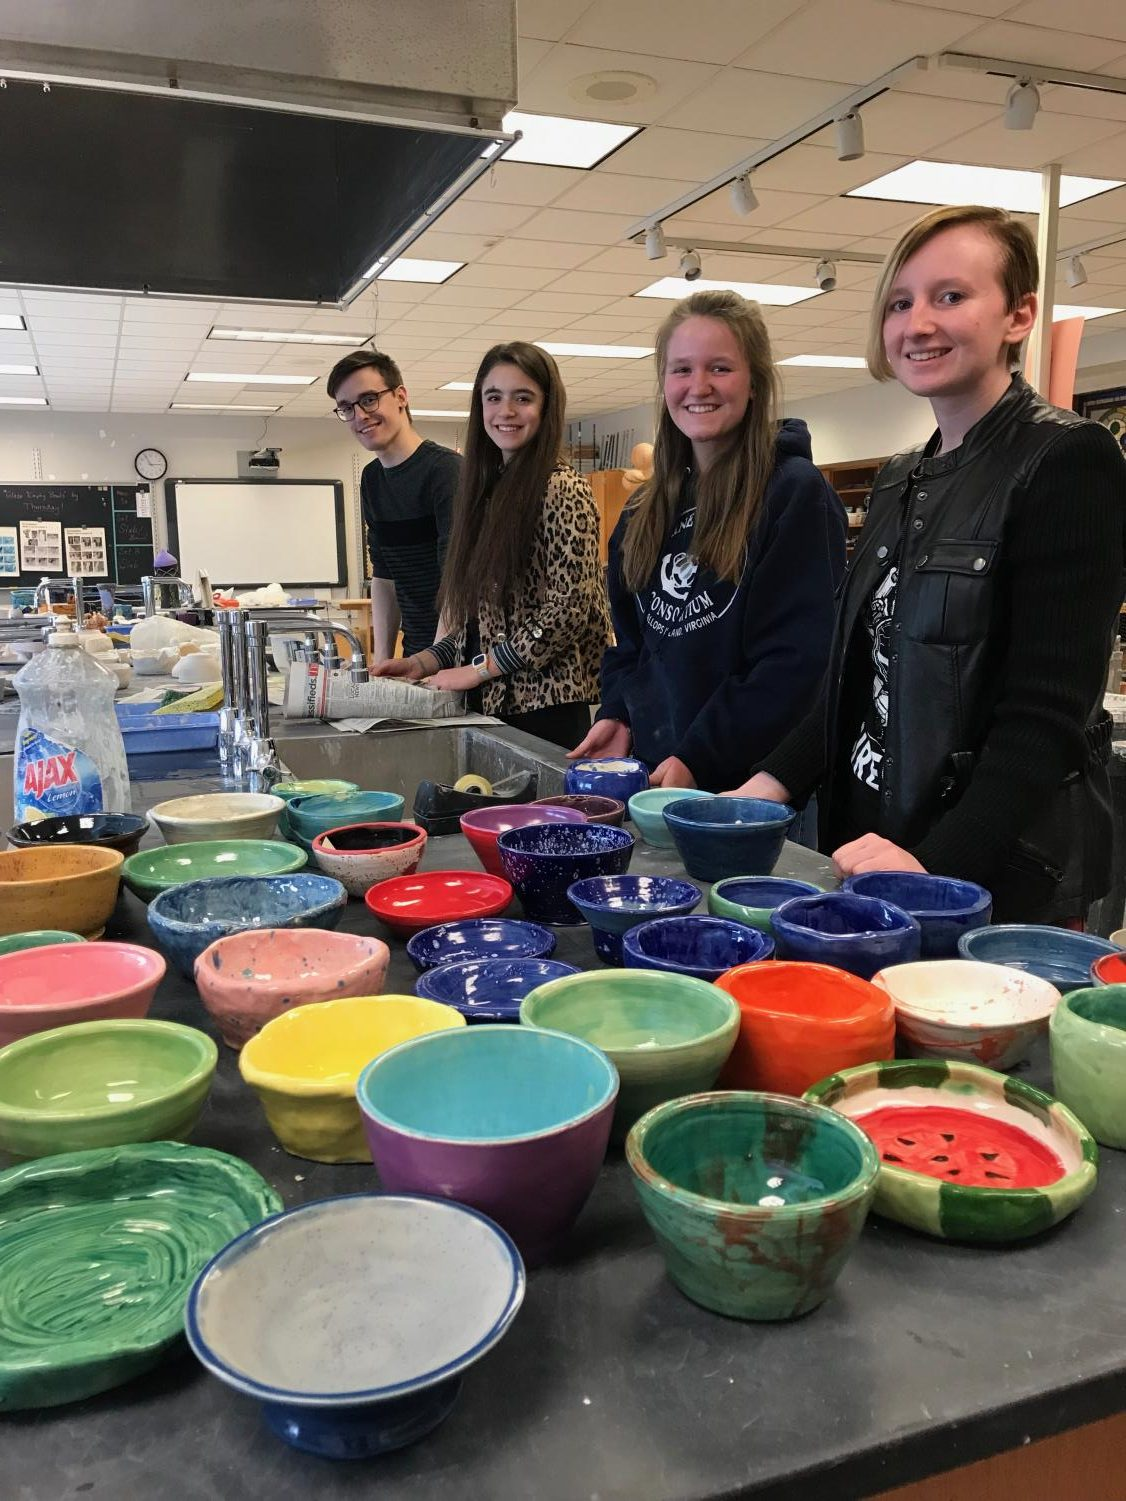 National Art Honor Society members package up the bowls for the Empty Bowl event held at Hempfield High School each year.